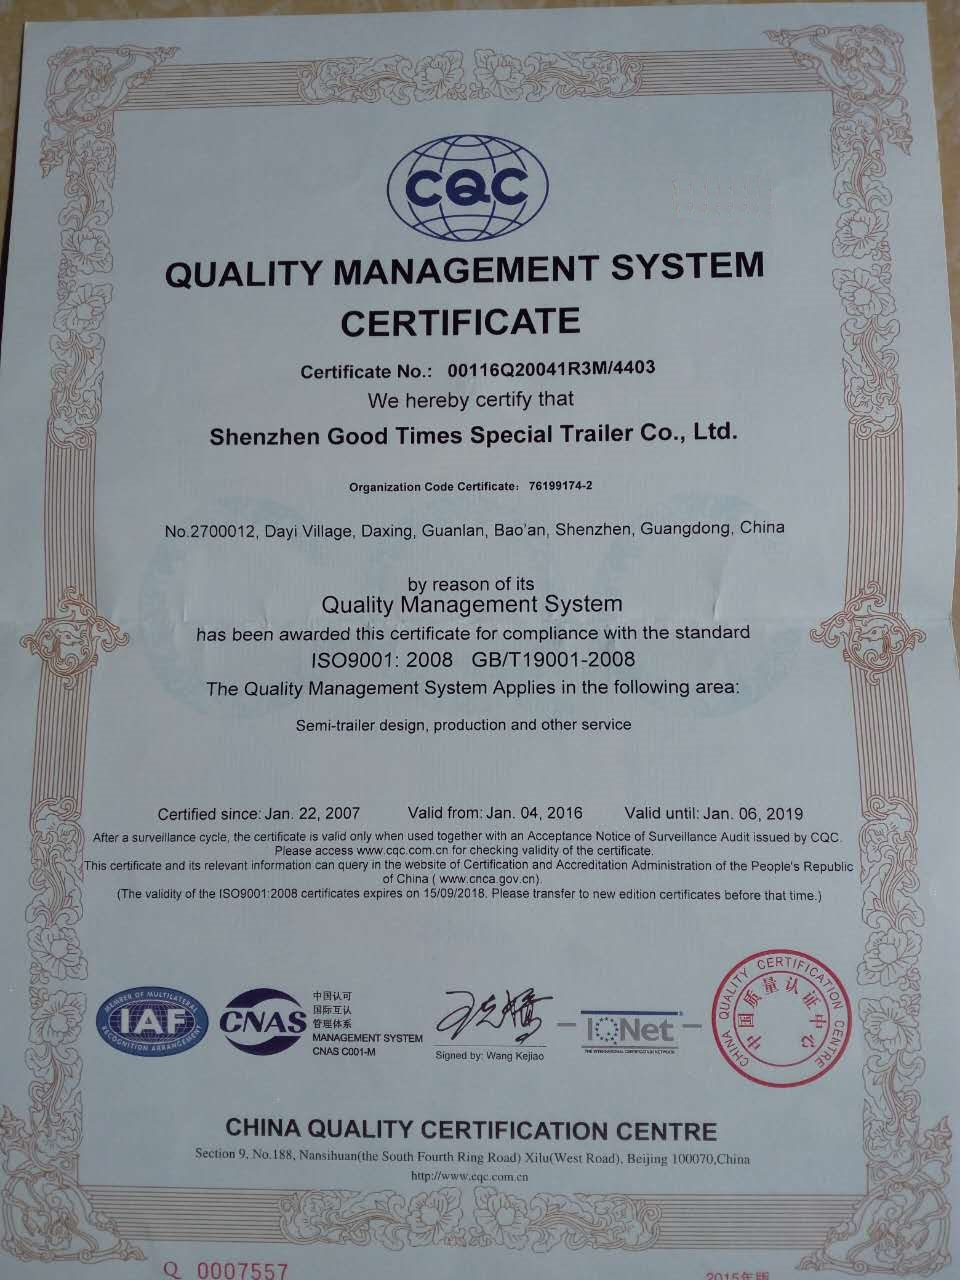 CQC ISO 9001 CERTIFICATE